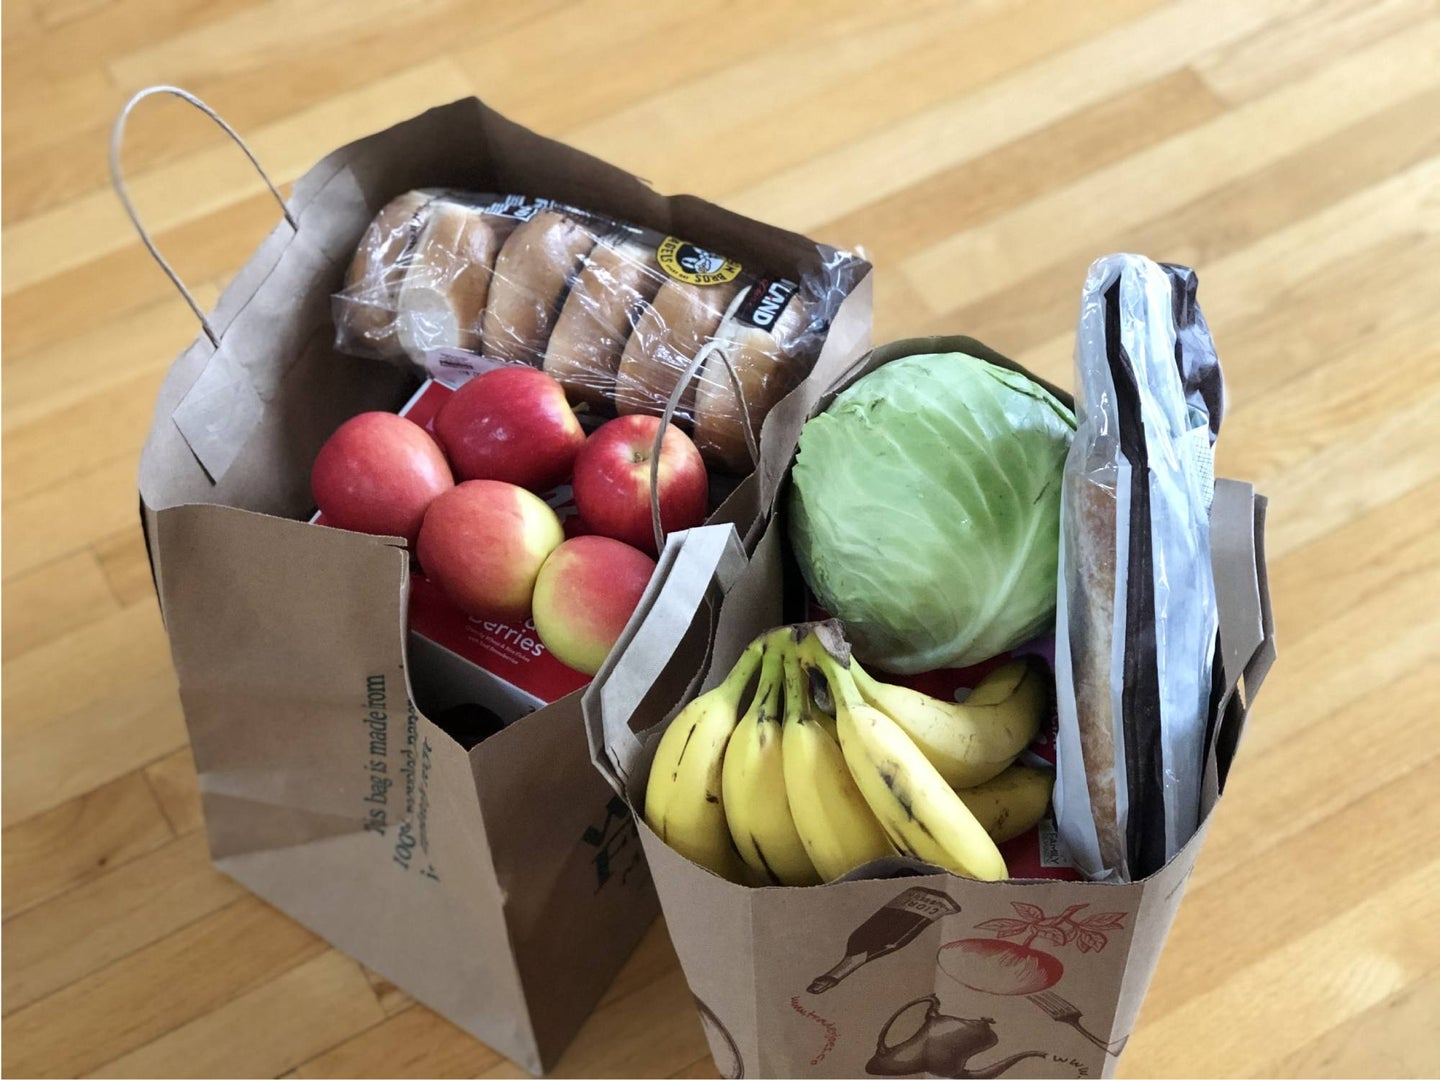 Bags with groceries